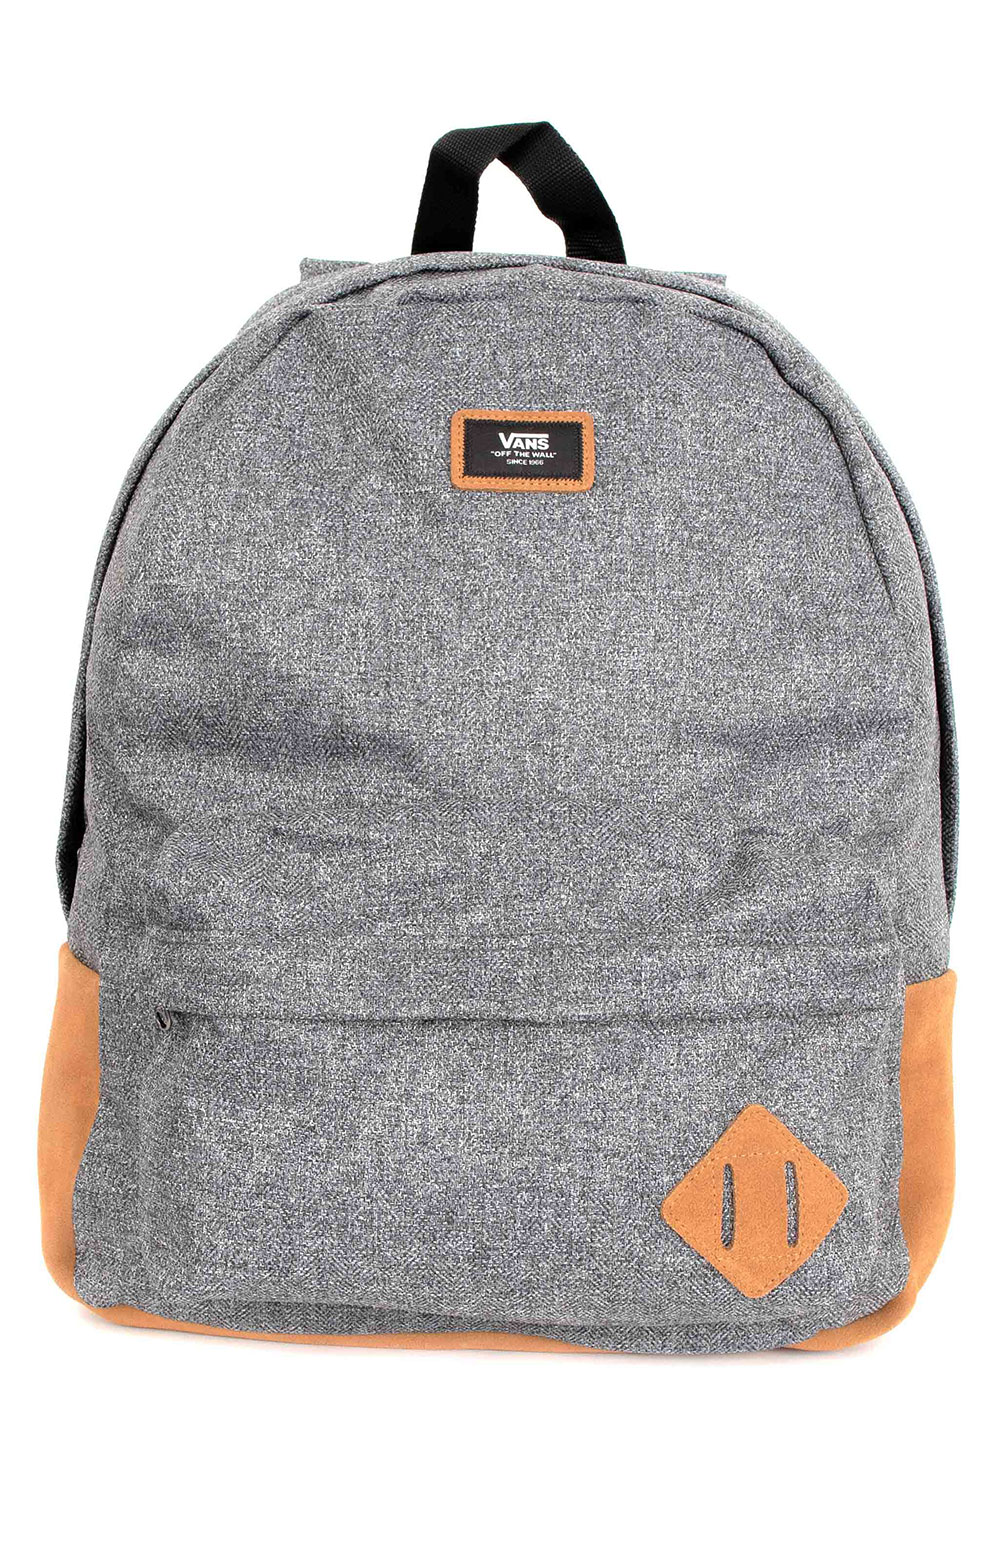 Old Skool II Backpack - Herringbone